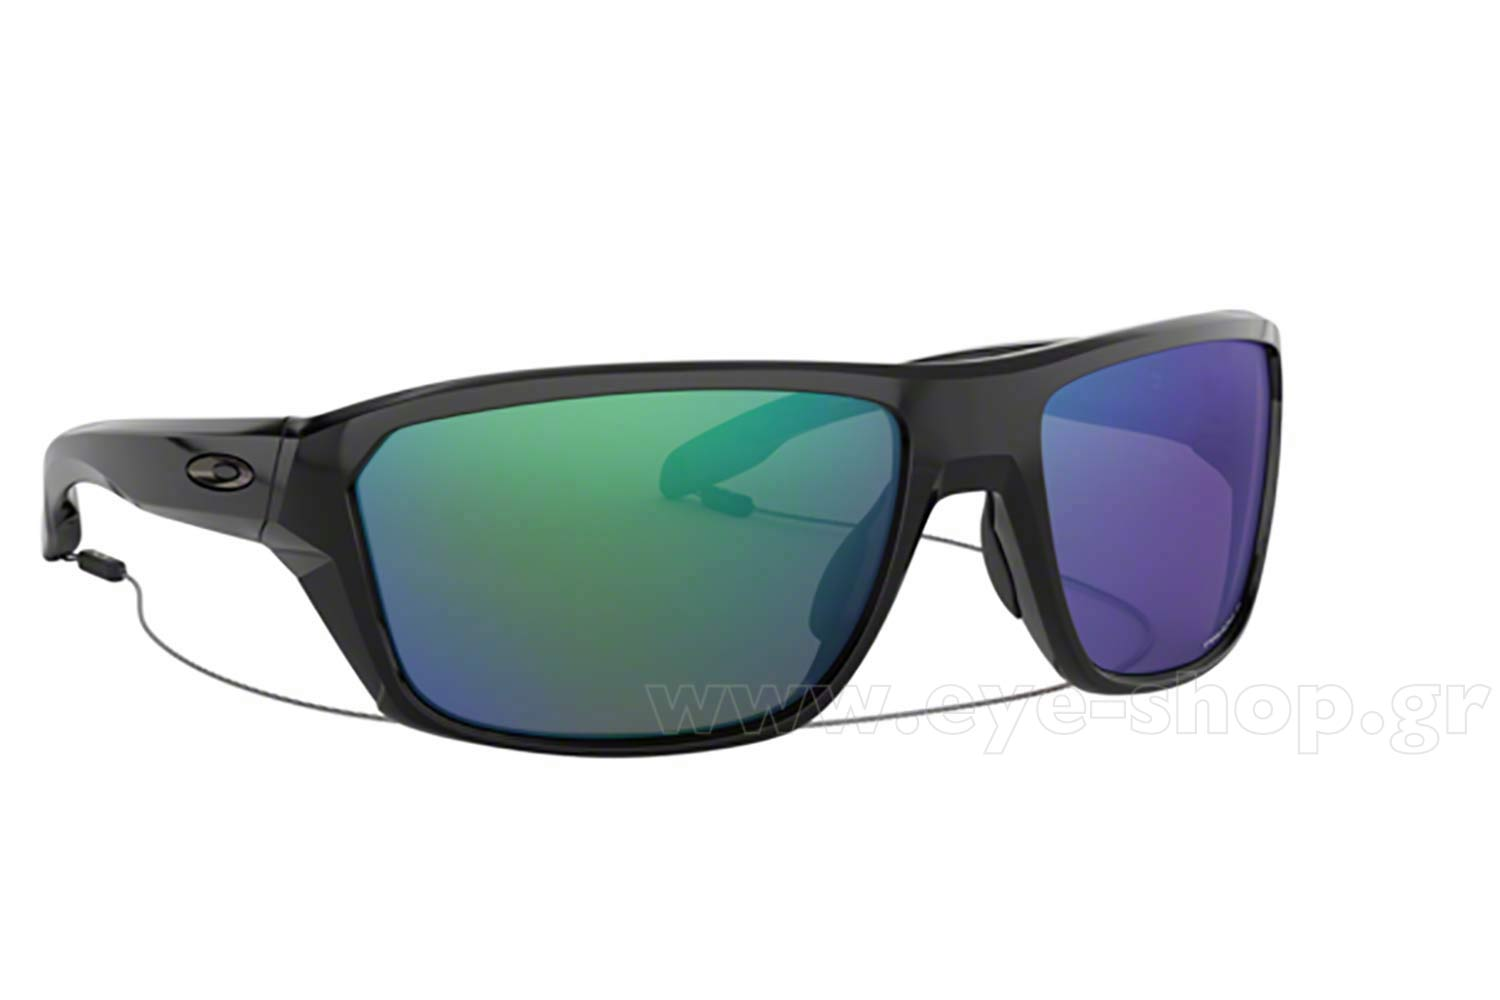 fbb0954a02b SUNGLASSES Oakley Split Shot 9416 05 Prizm Shallow Water Polarized